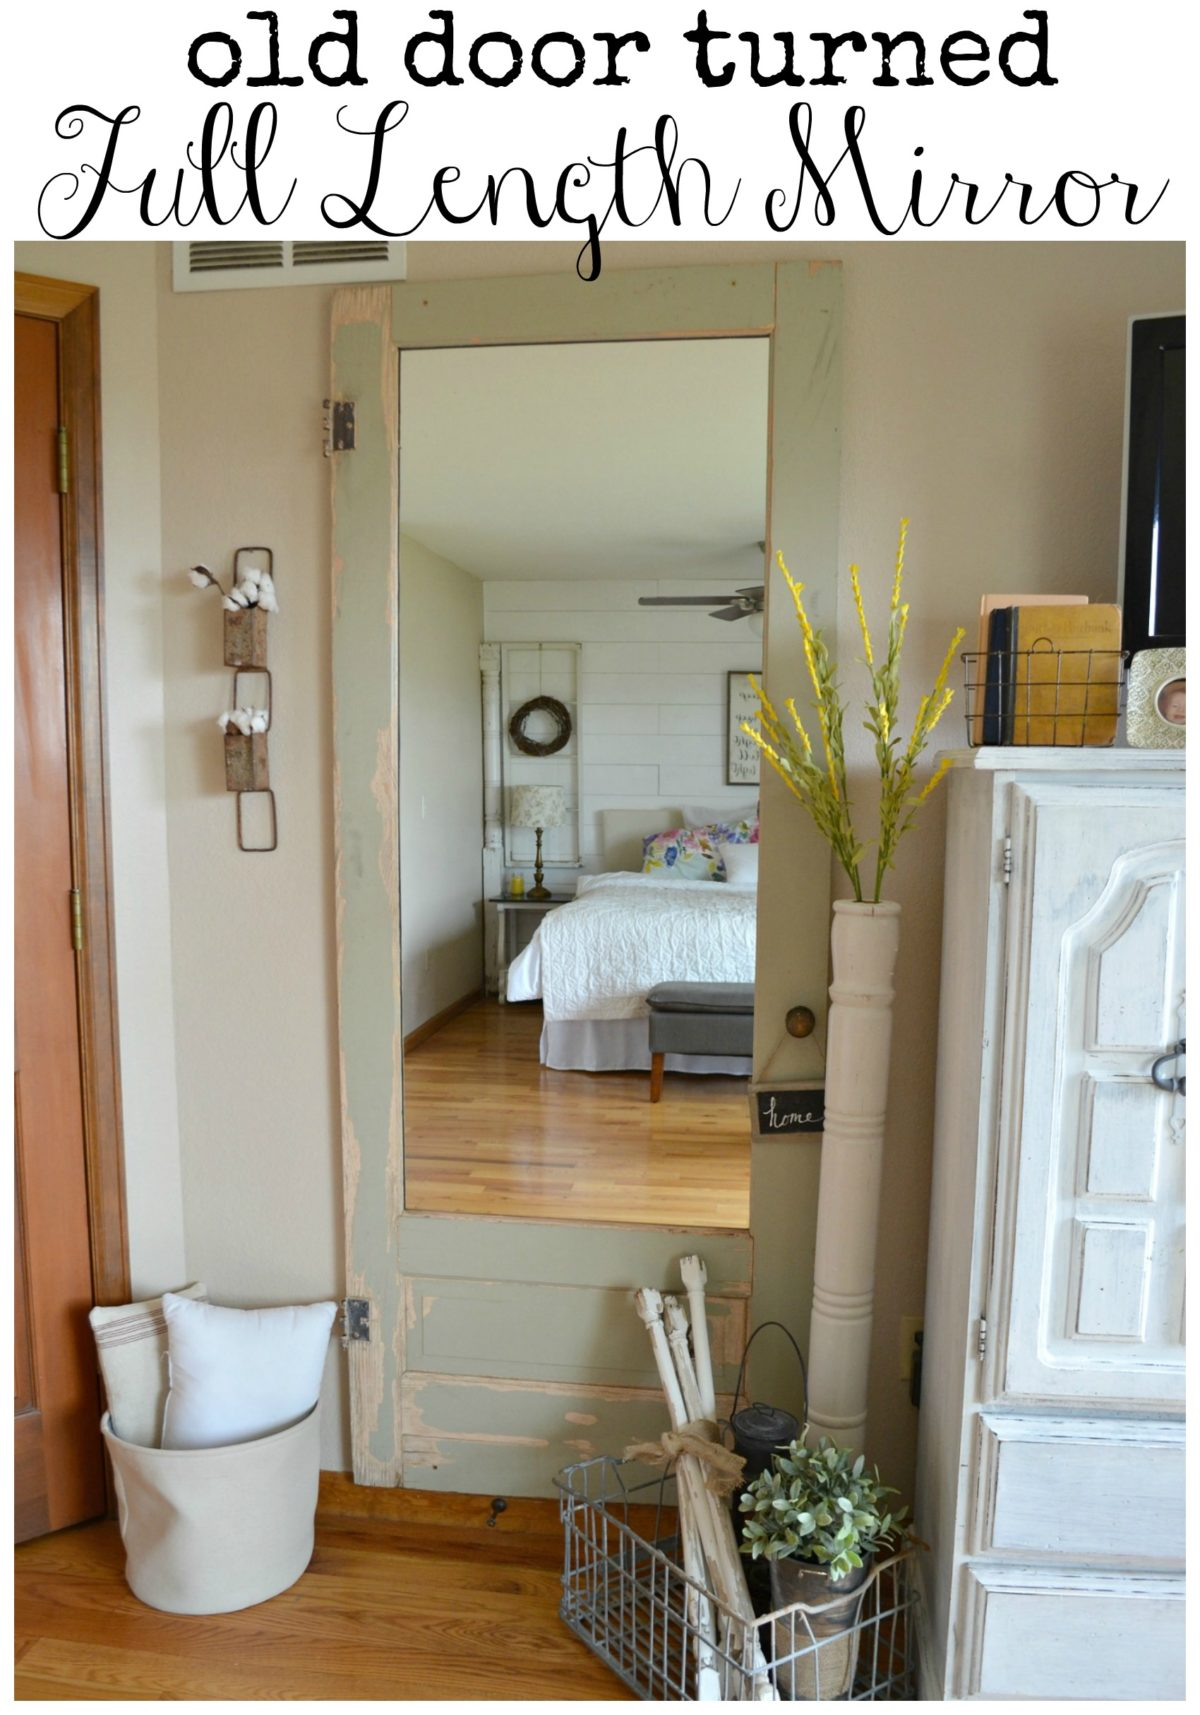 full length wall mirrors. Old Door Turned Full Length Wall Mirror Mirrors